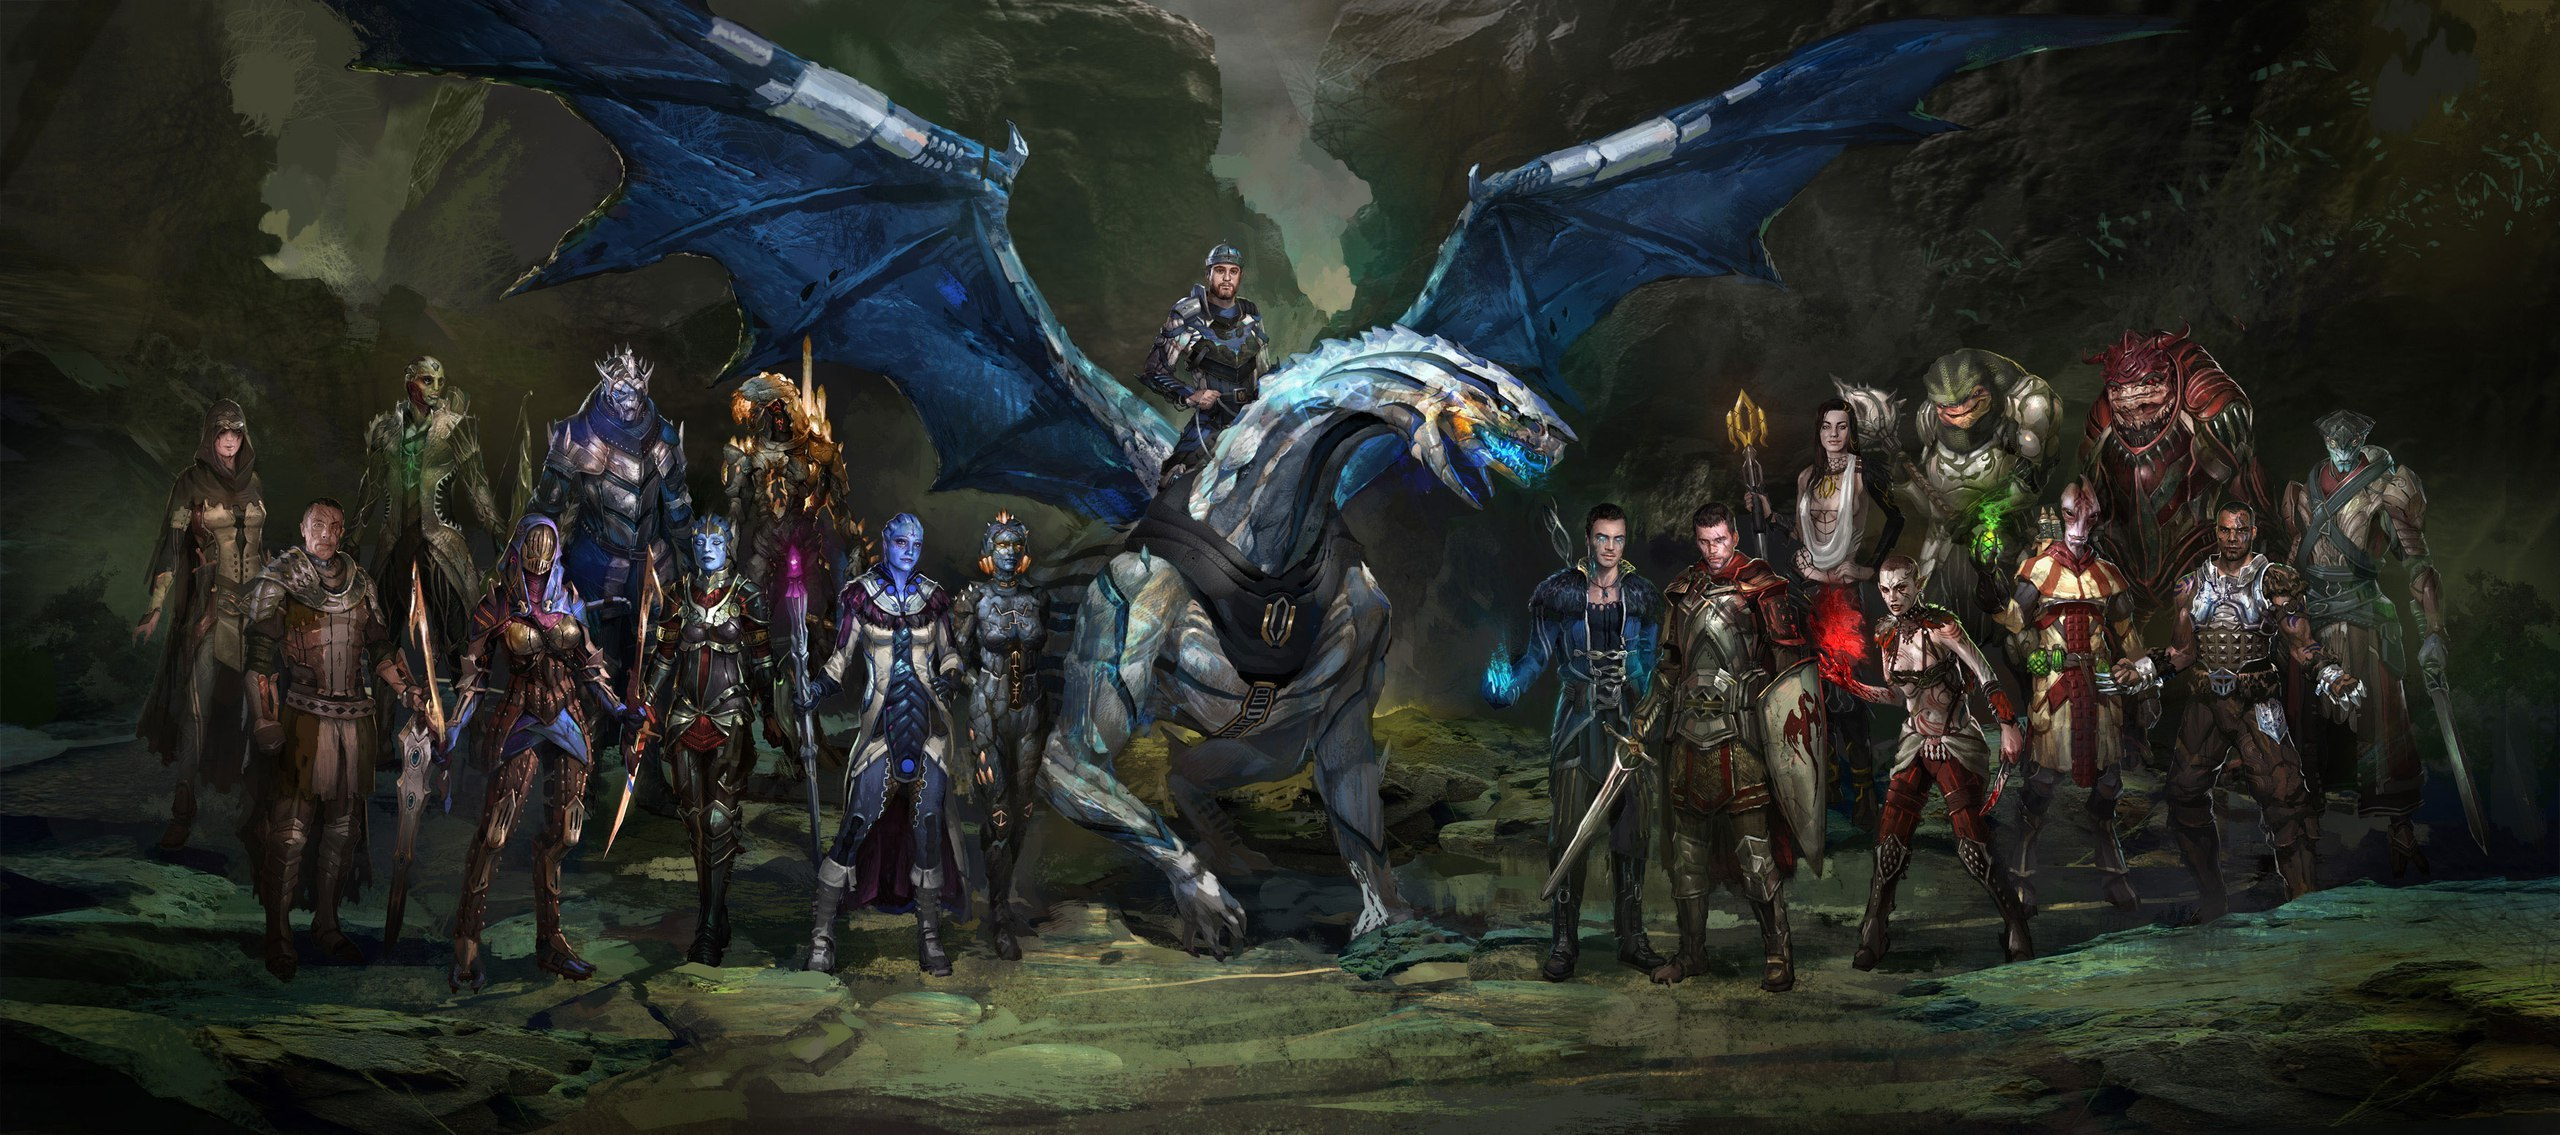 Mass Effect: Fantasy version